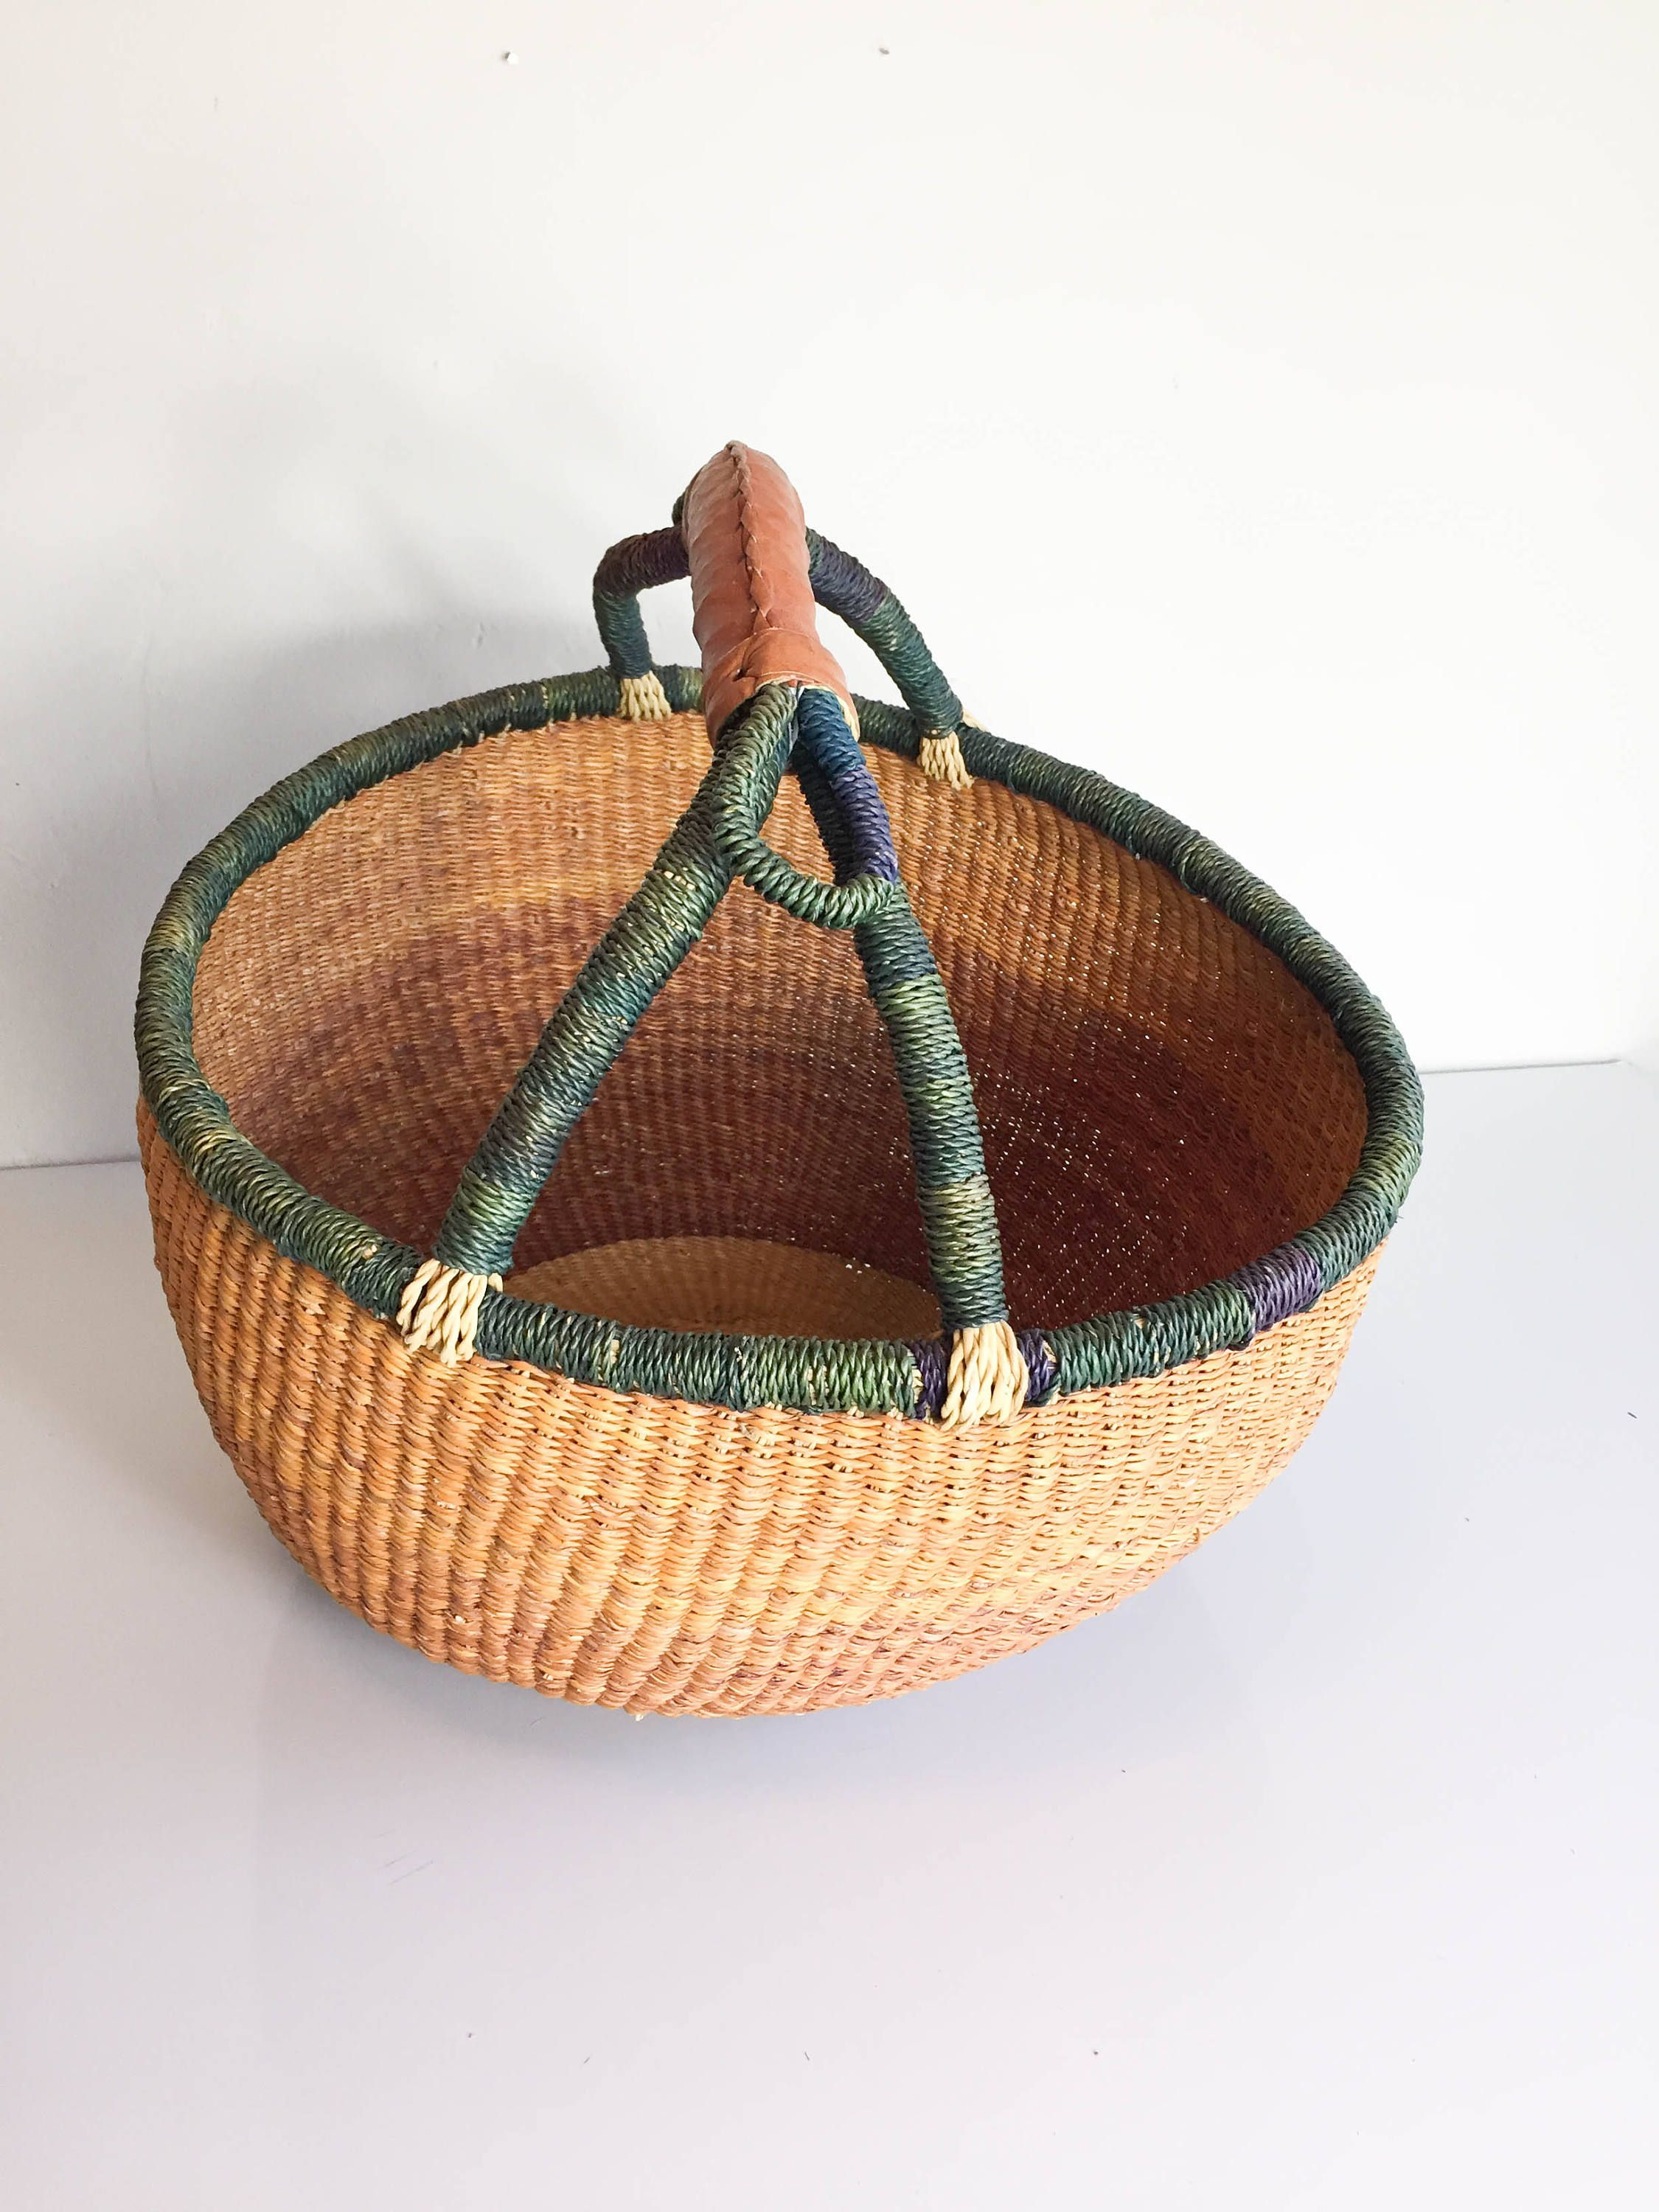 Large Woven Straw Market Basket With Leather Handle By